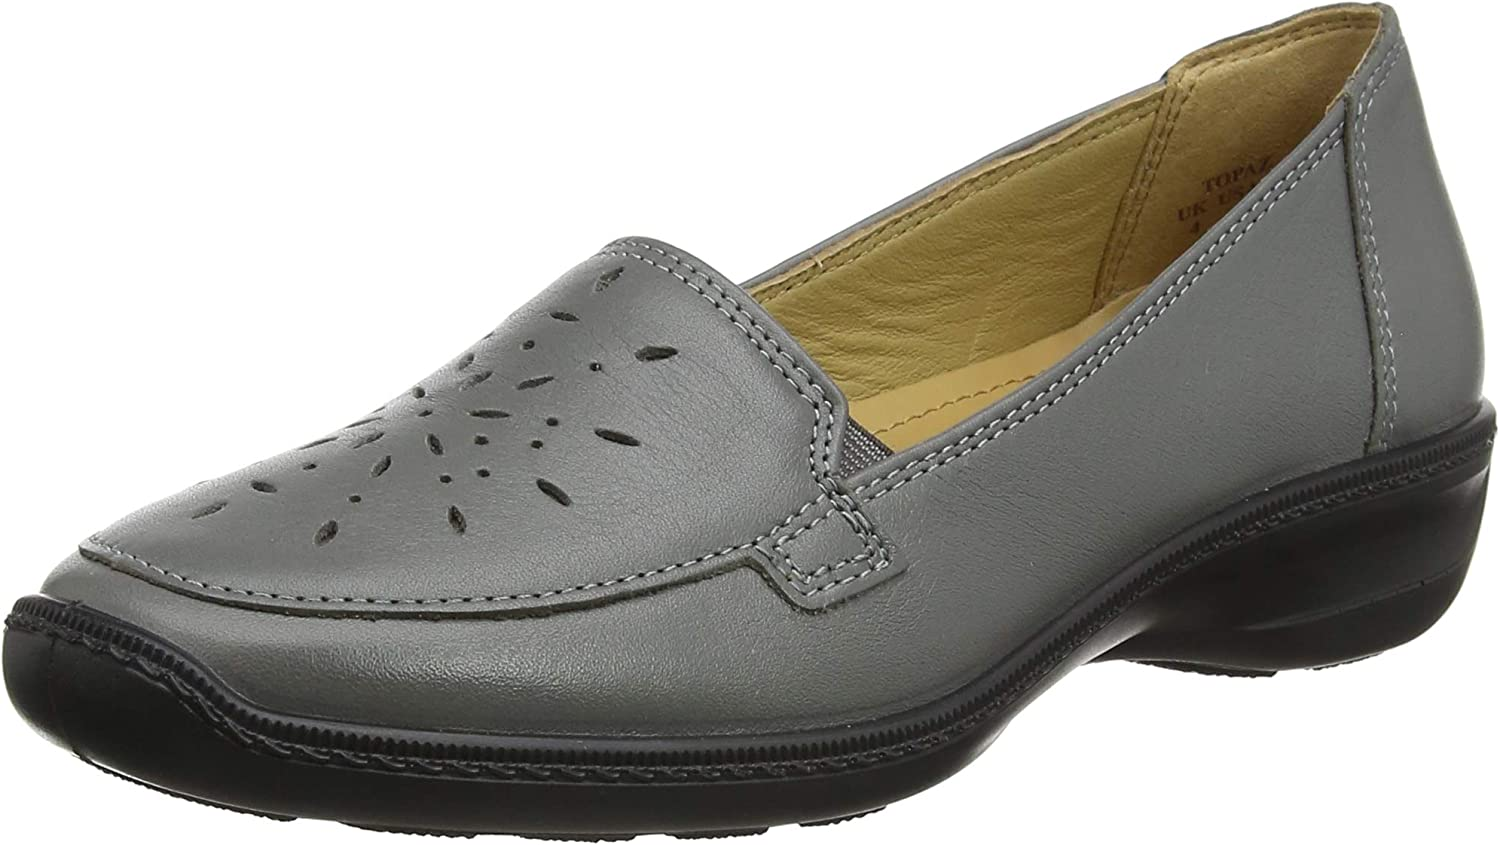 Los Angeles Mall Hotter Women's Topaz Loafers 9 Popular brand in the world Grey Urban 385